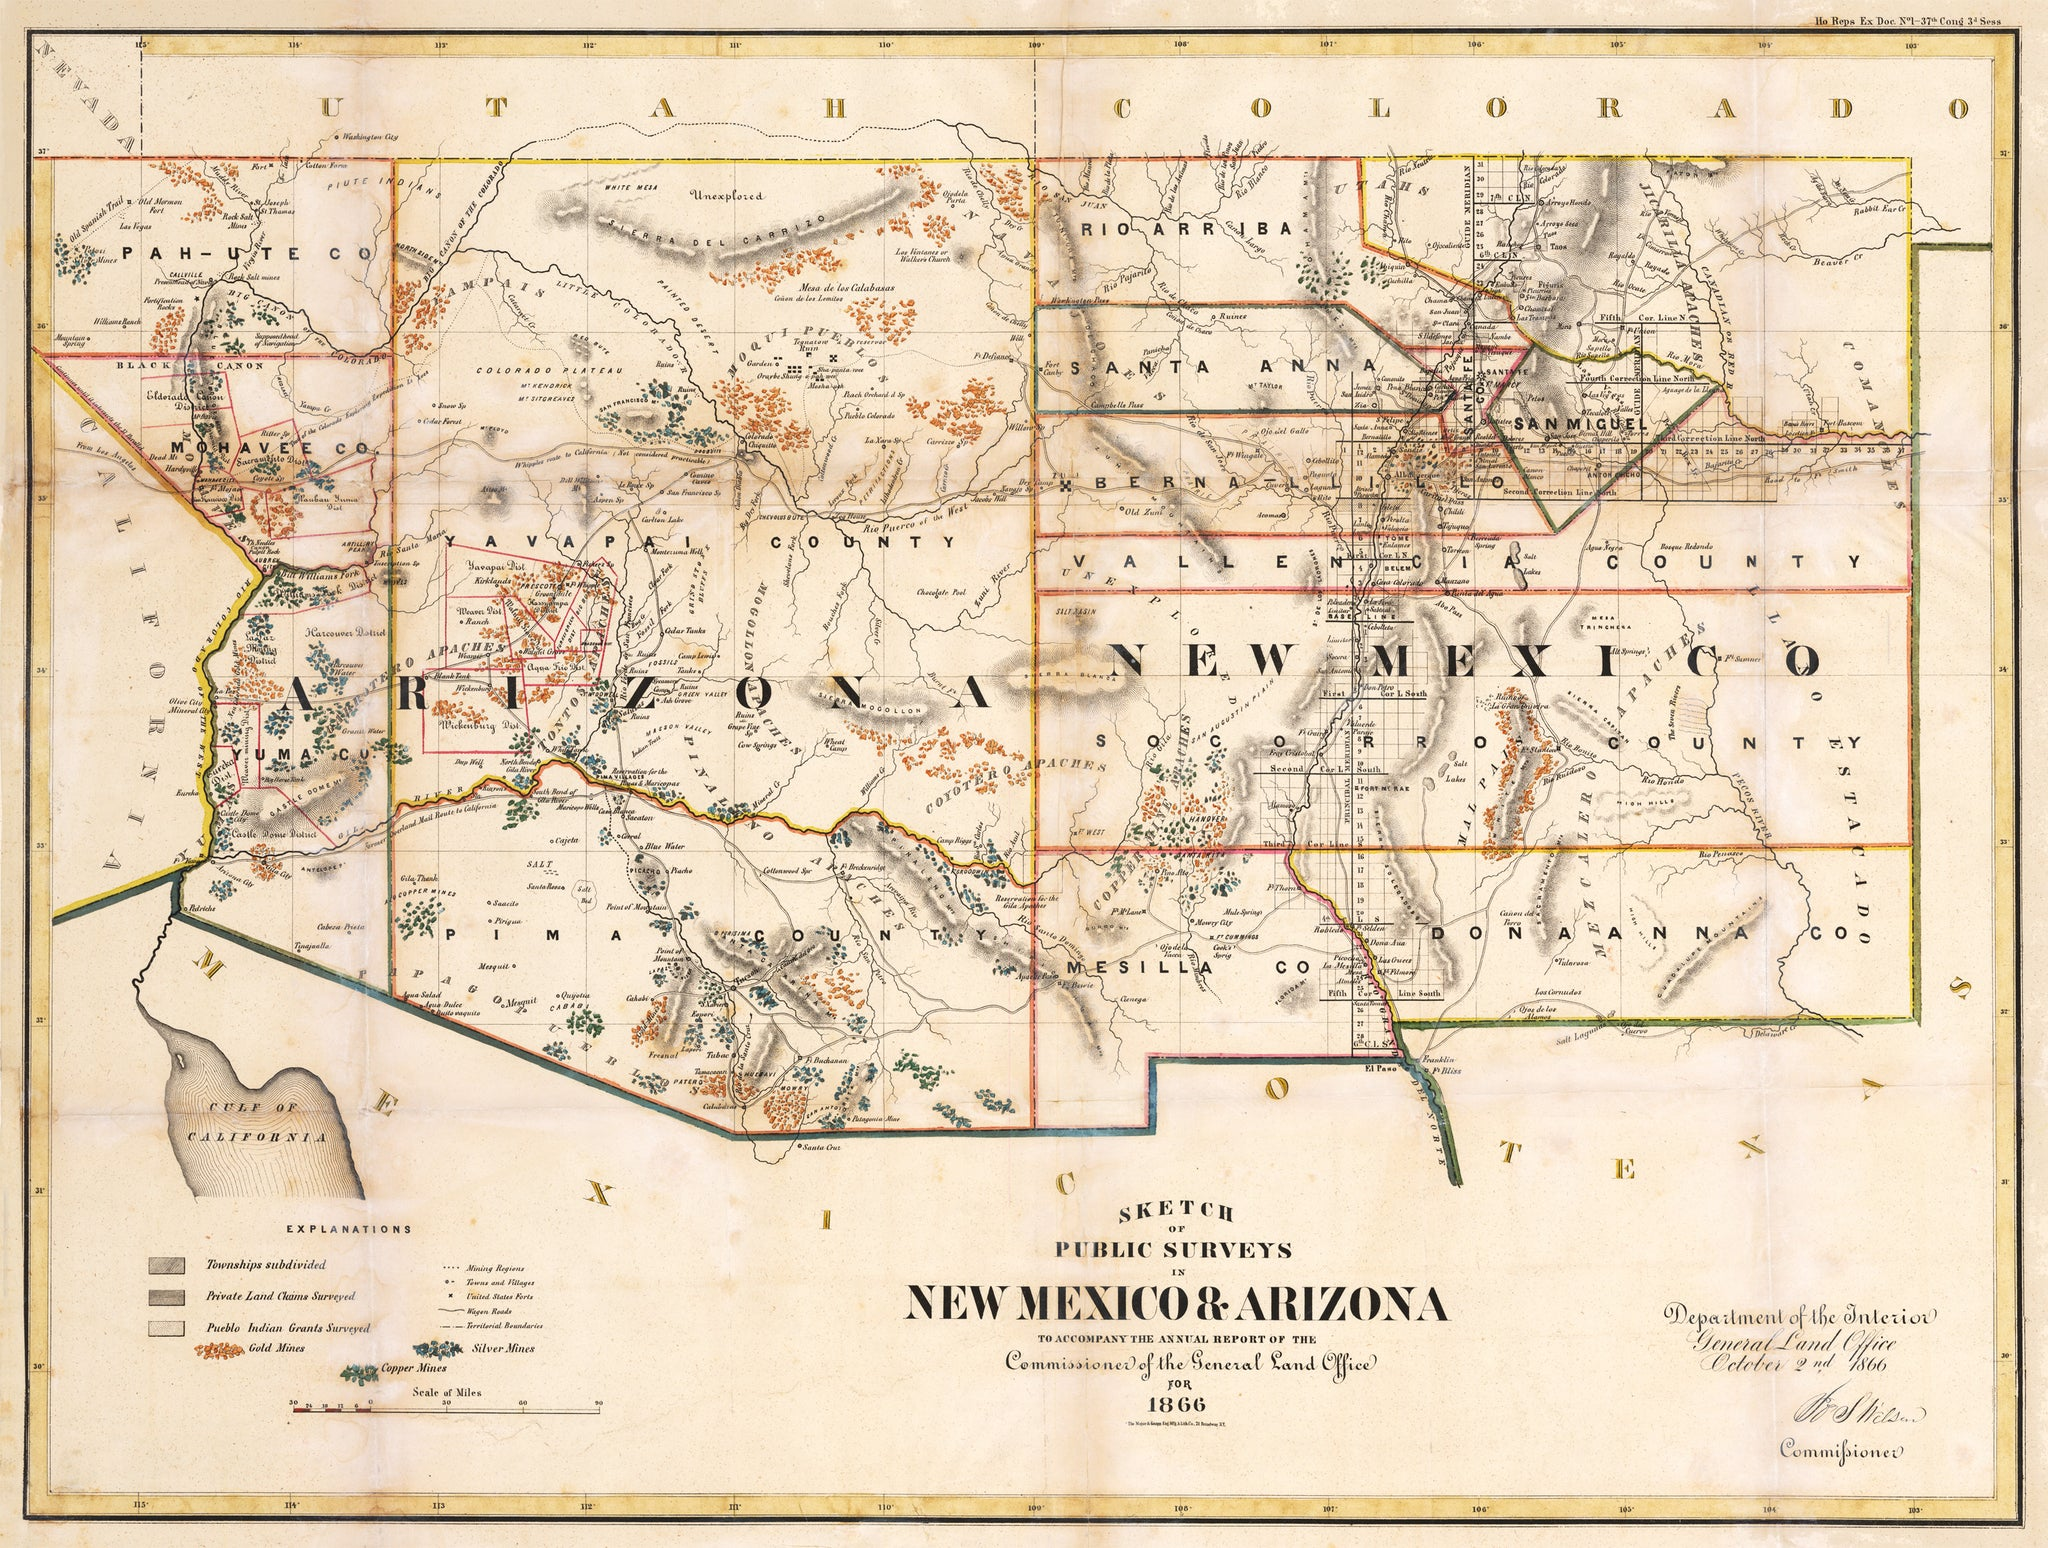 1866 Sketch of Public Surveys in New Mexico & Arizona... - the ...